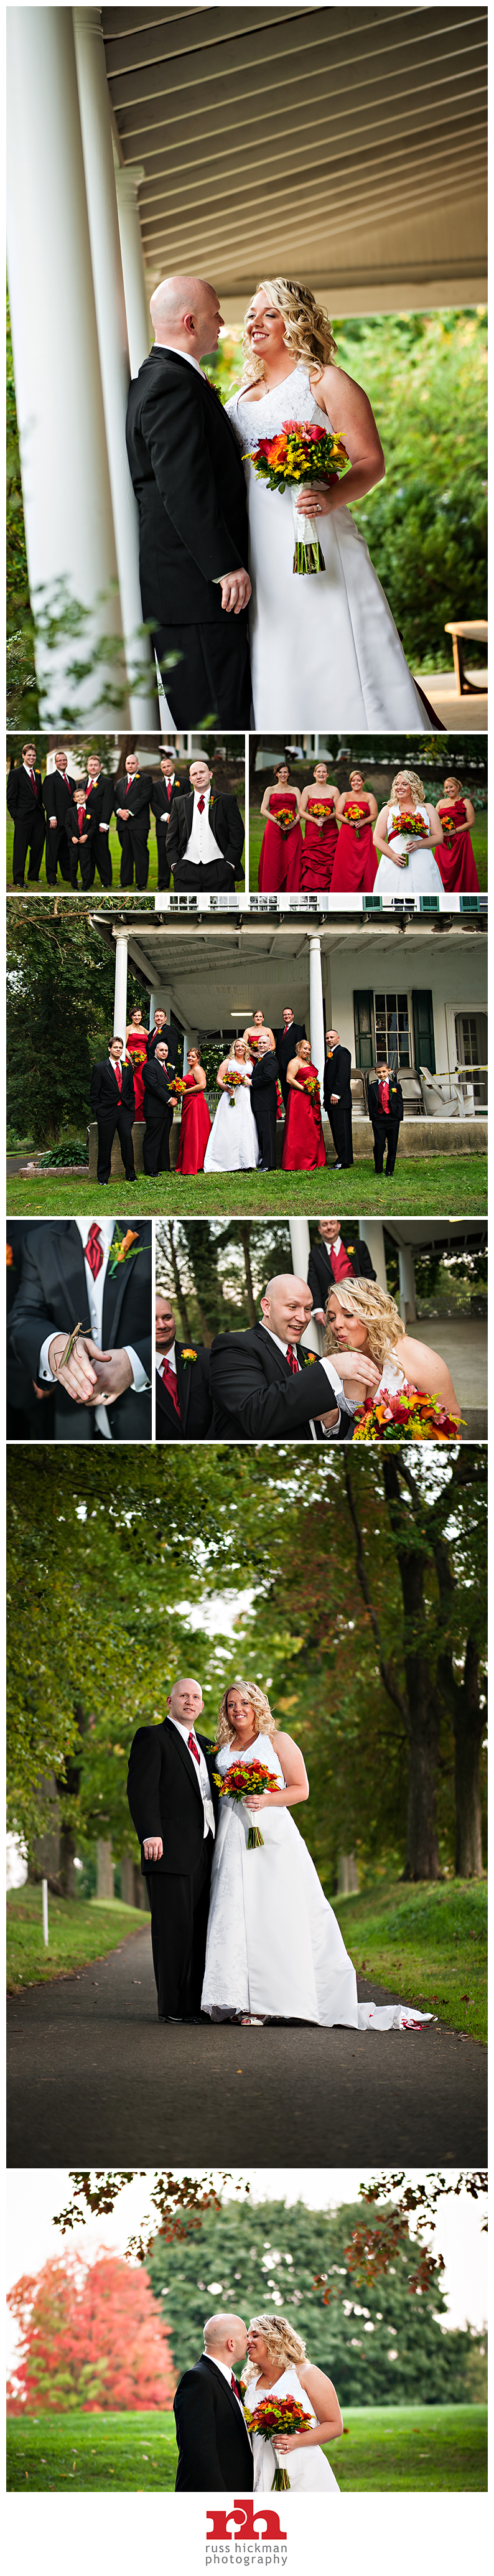 Philadelphia Wedding Photographer KBW0039